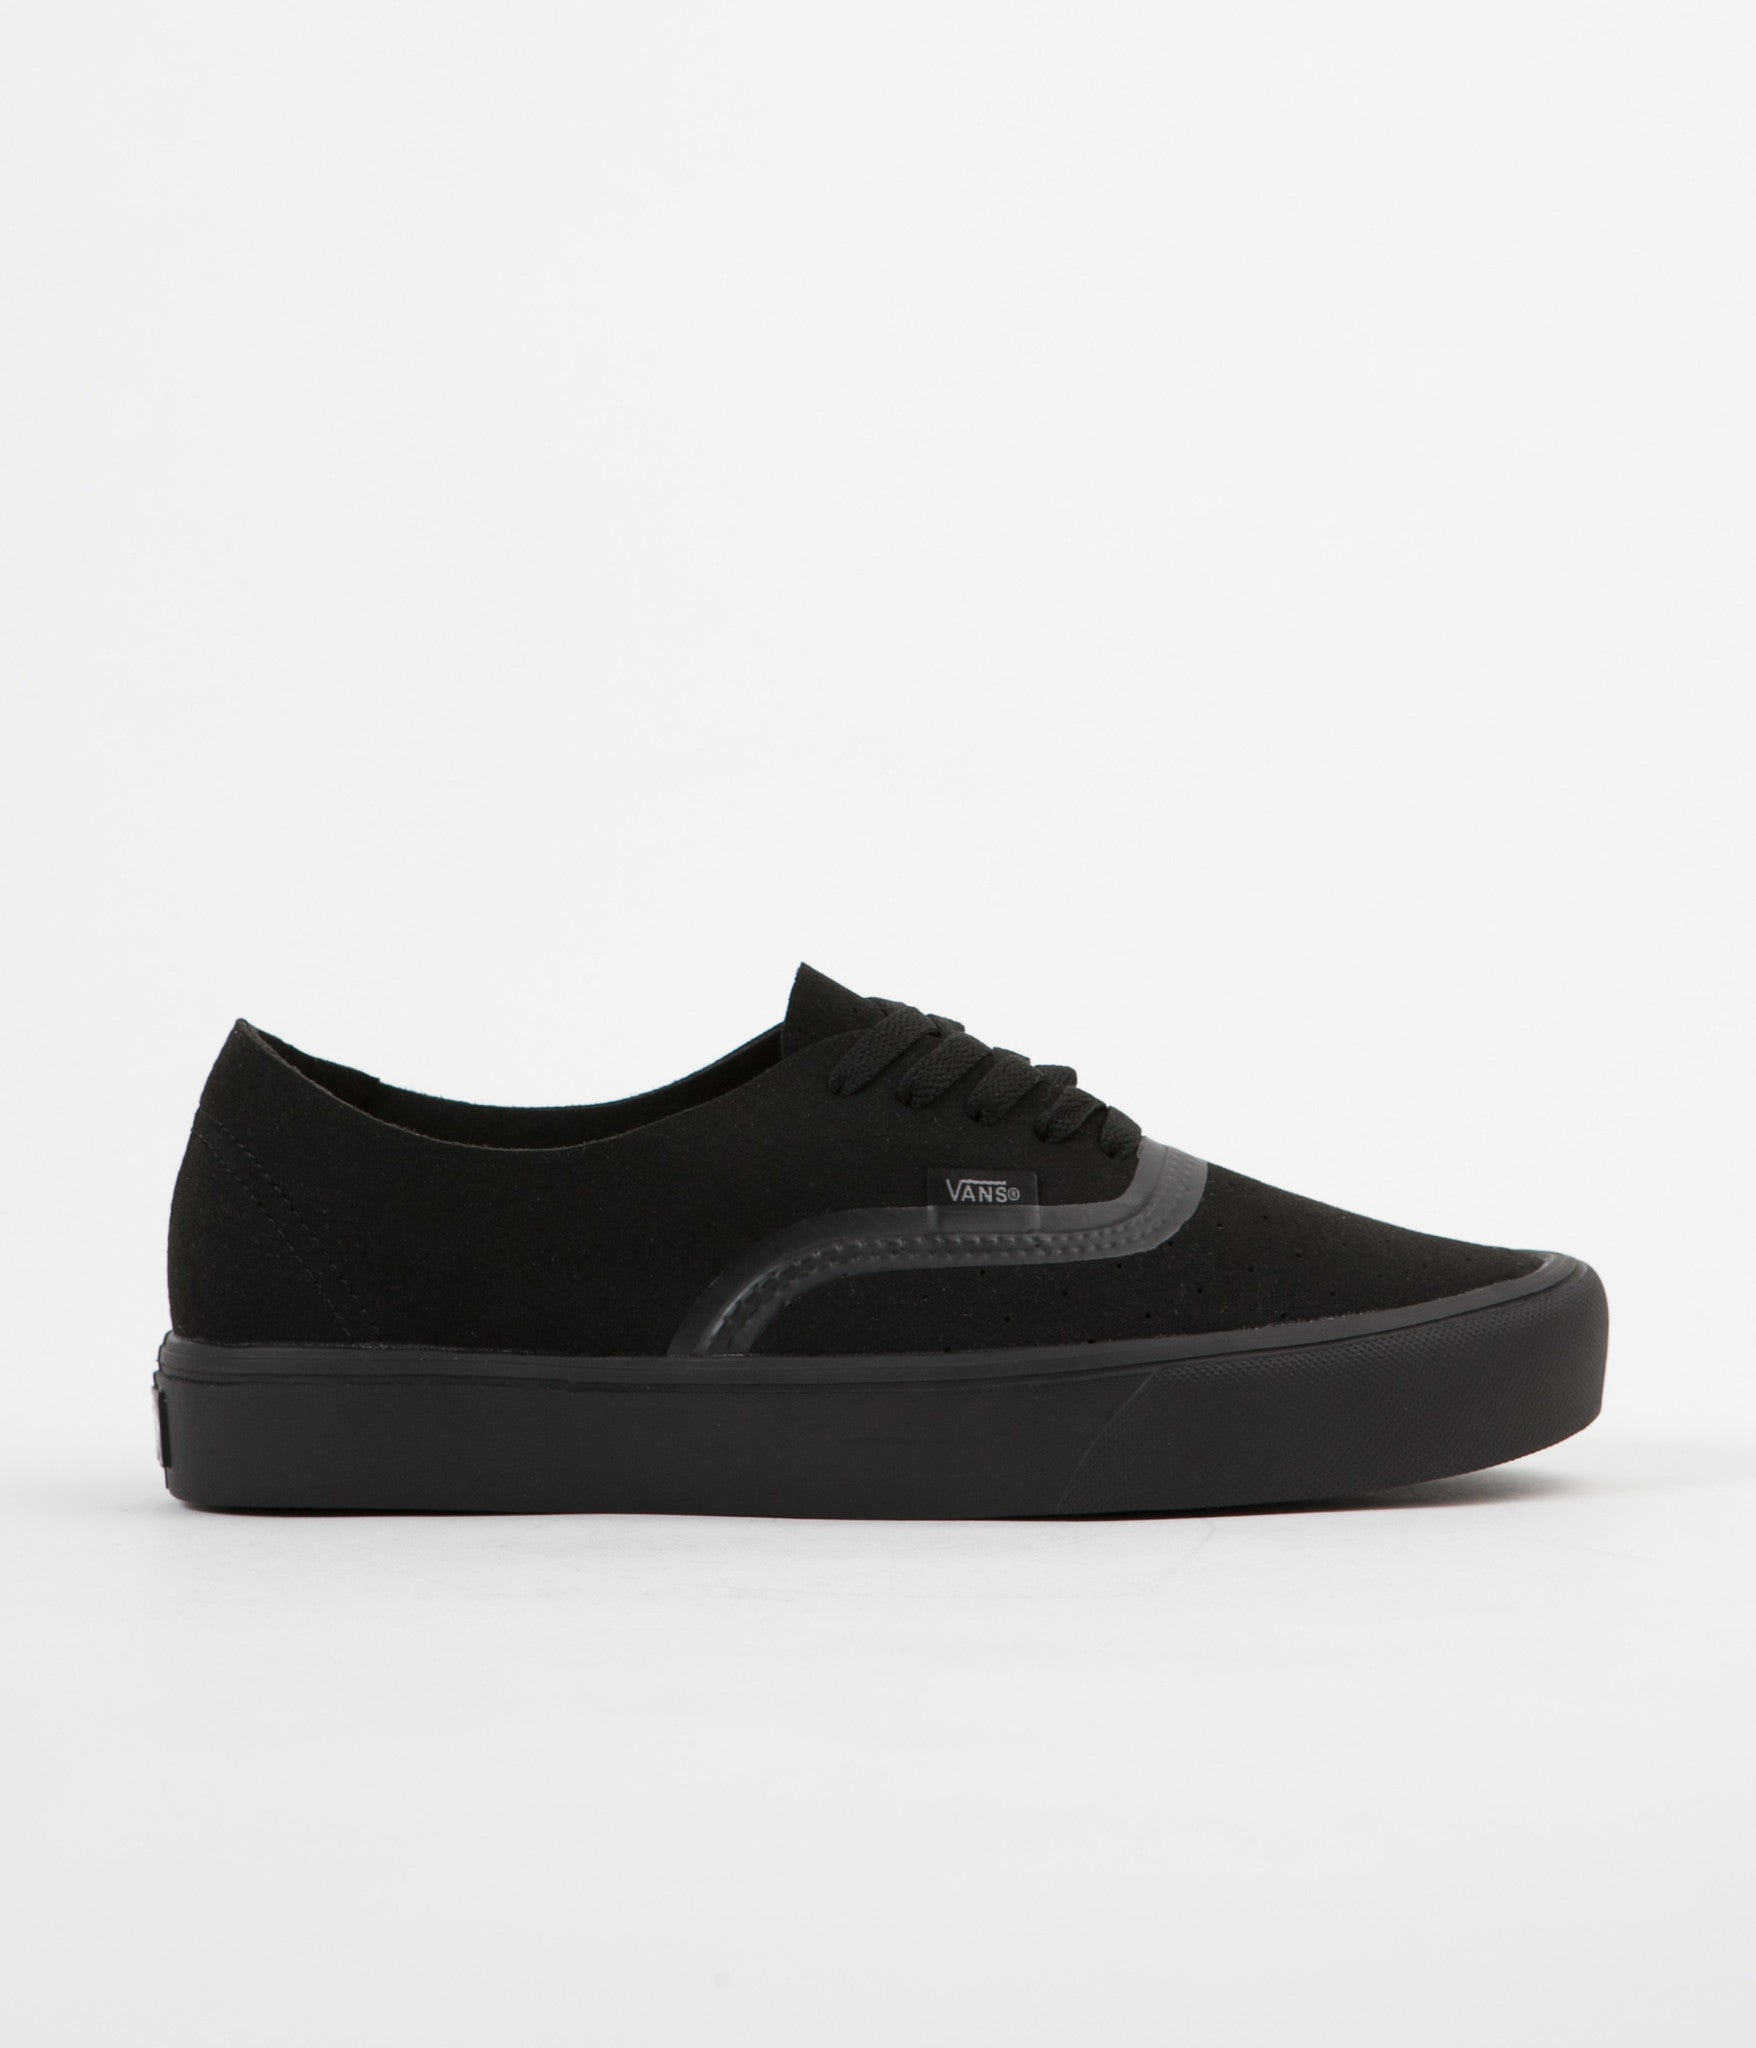 2e1b3aa4c43fba Vans Authentic Lite Rapidweld (Perf) Shoes - Black   Black